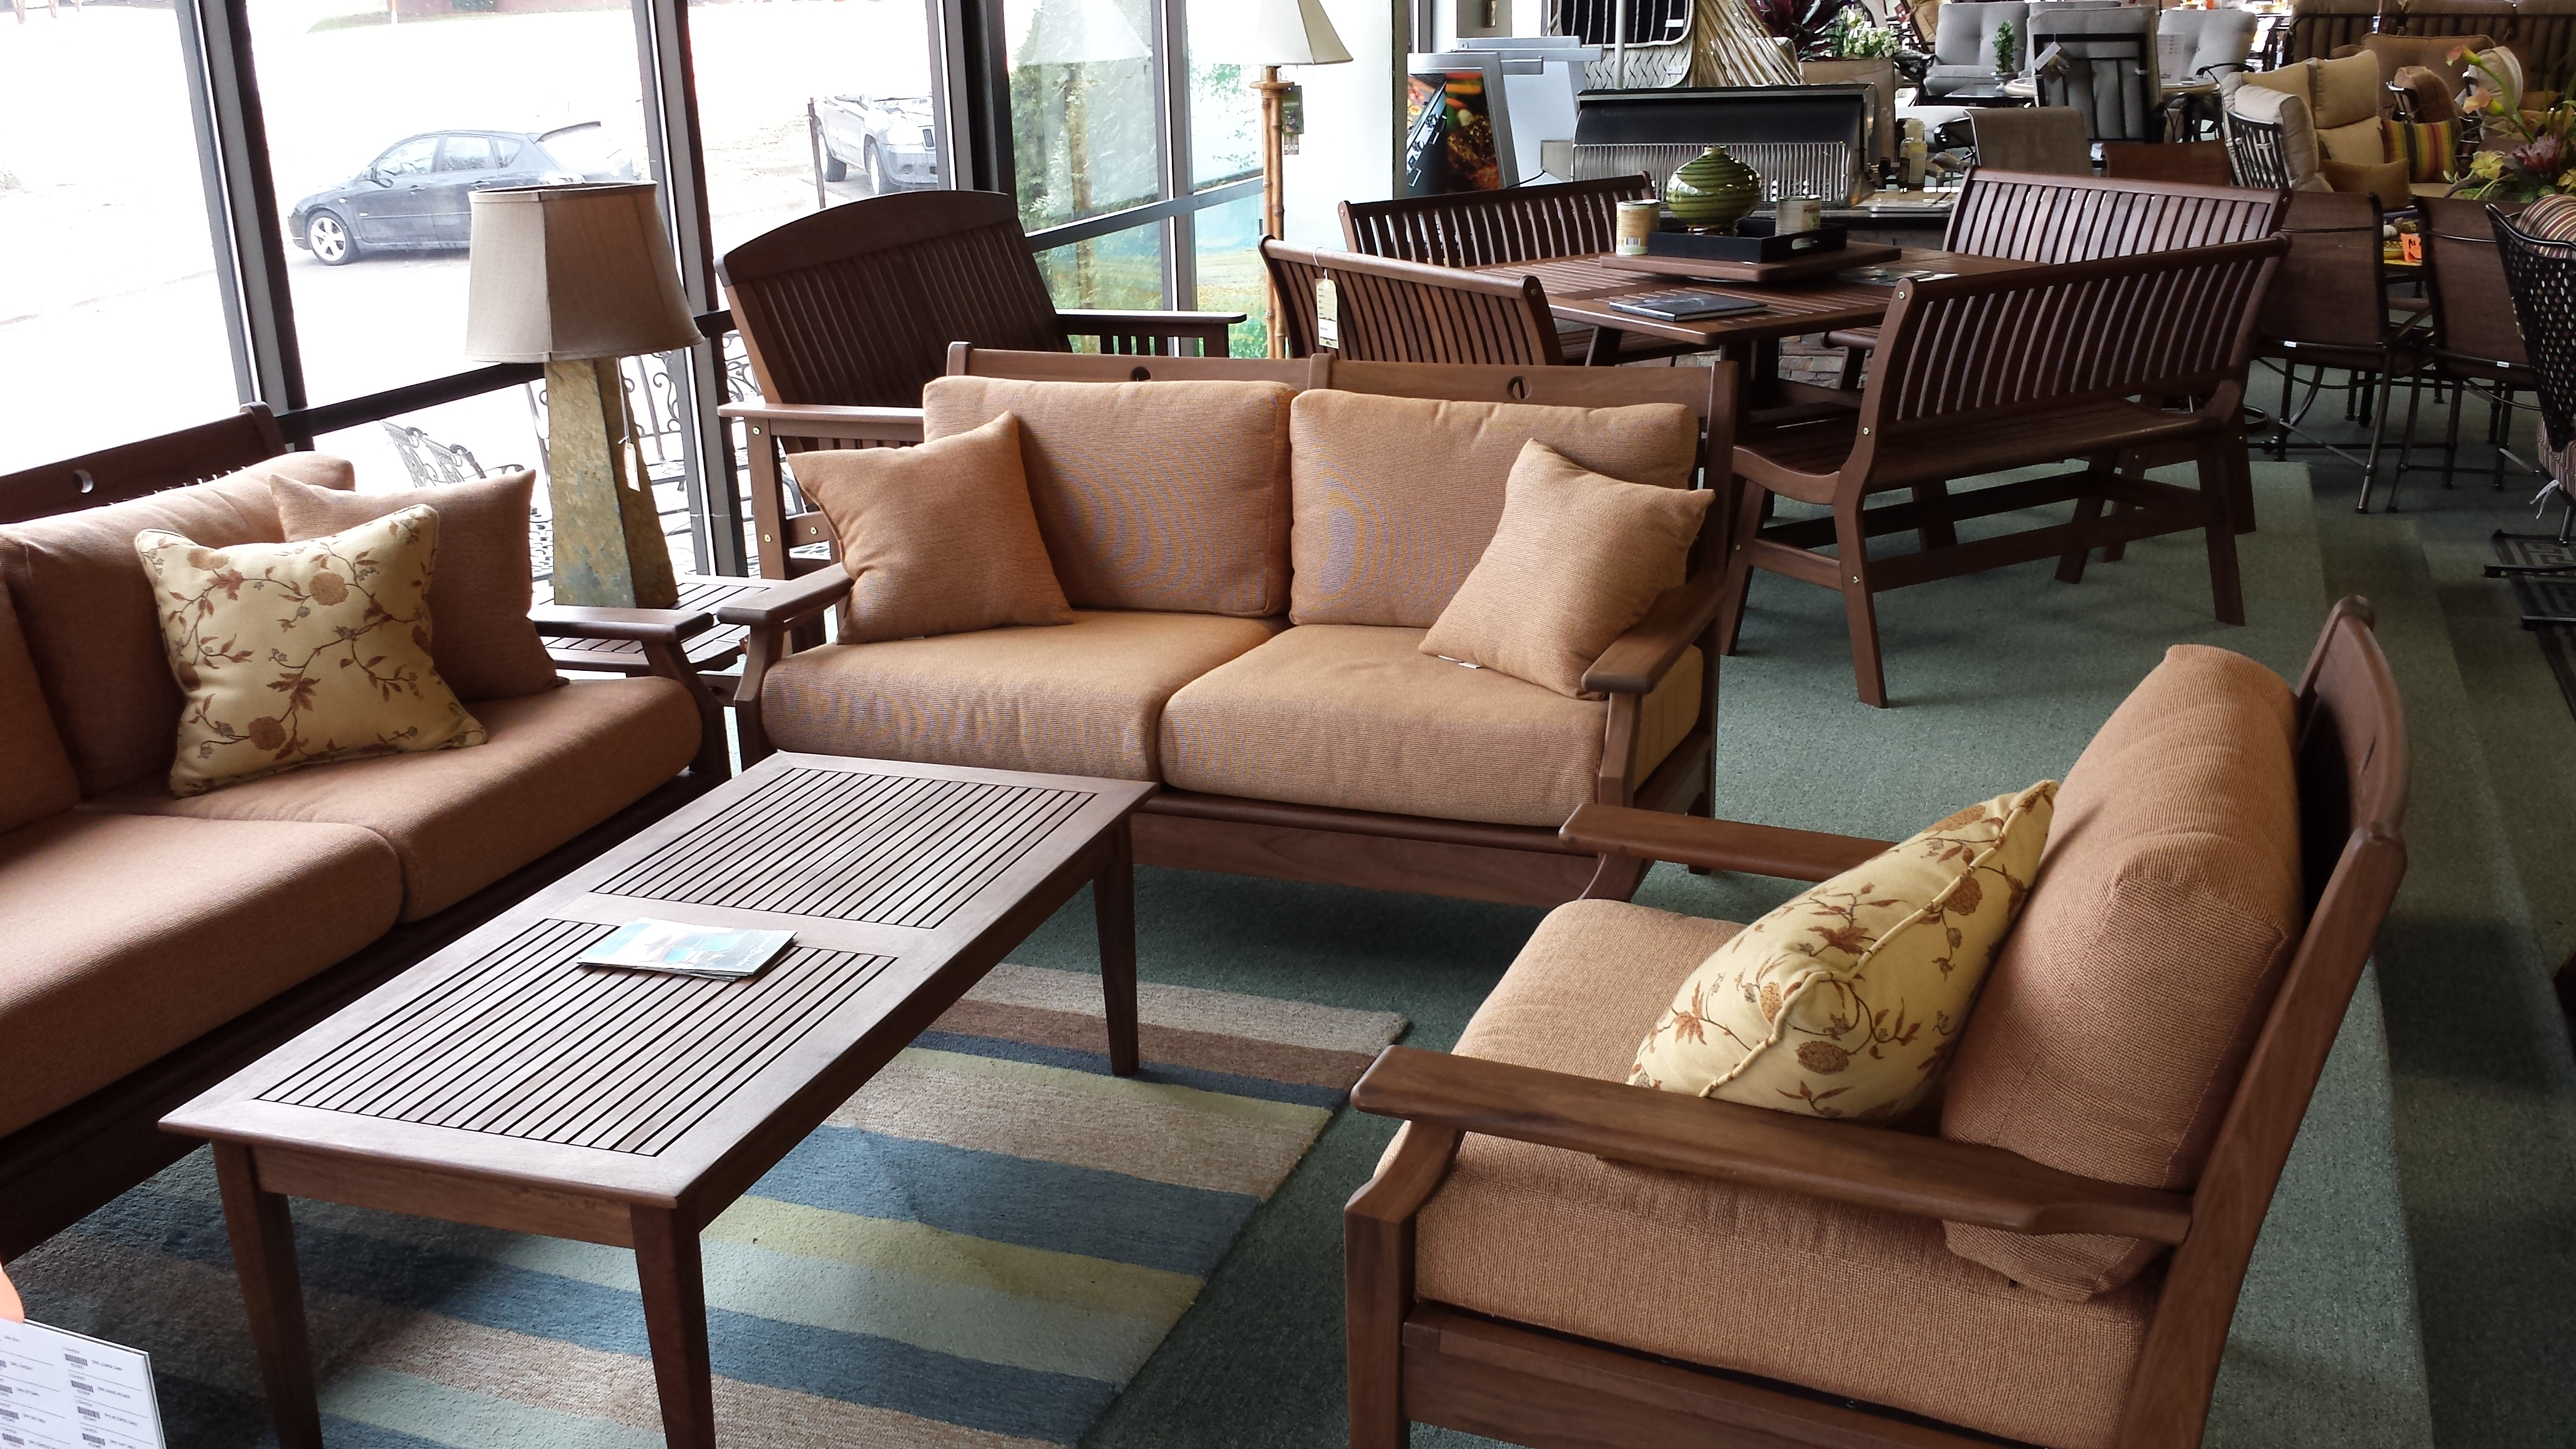 The Fire House Casual Living Store 5301 Capital Blvd, #J ... on Fireplace Casual Living id=78118